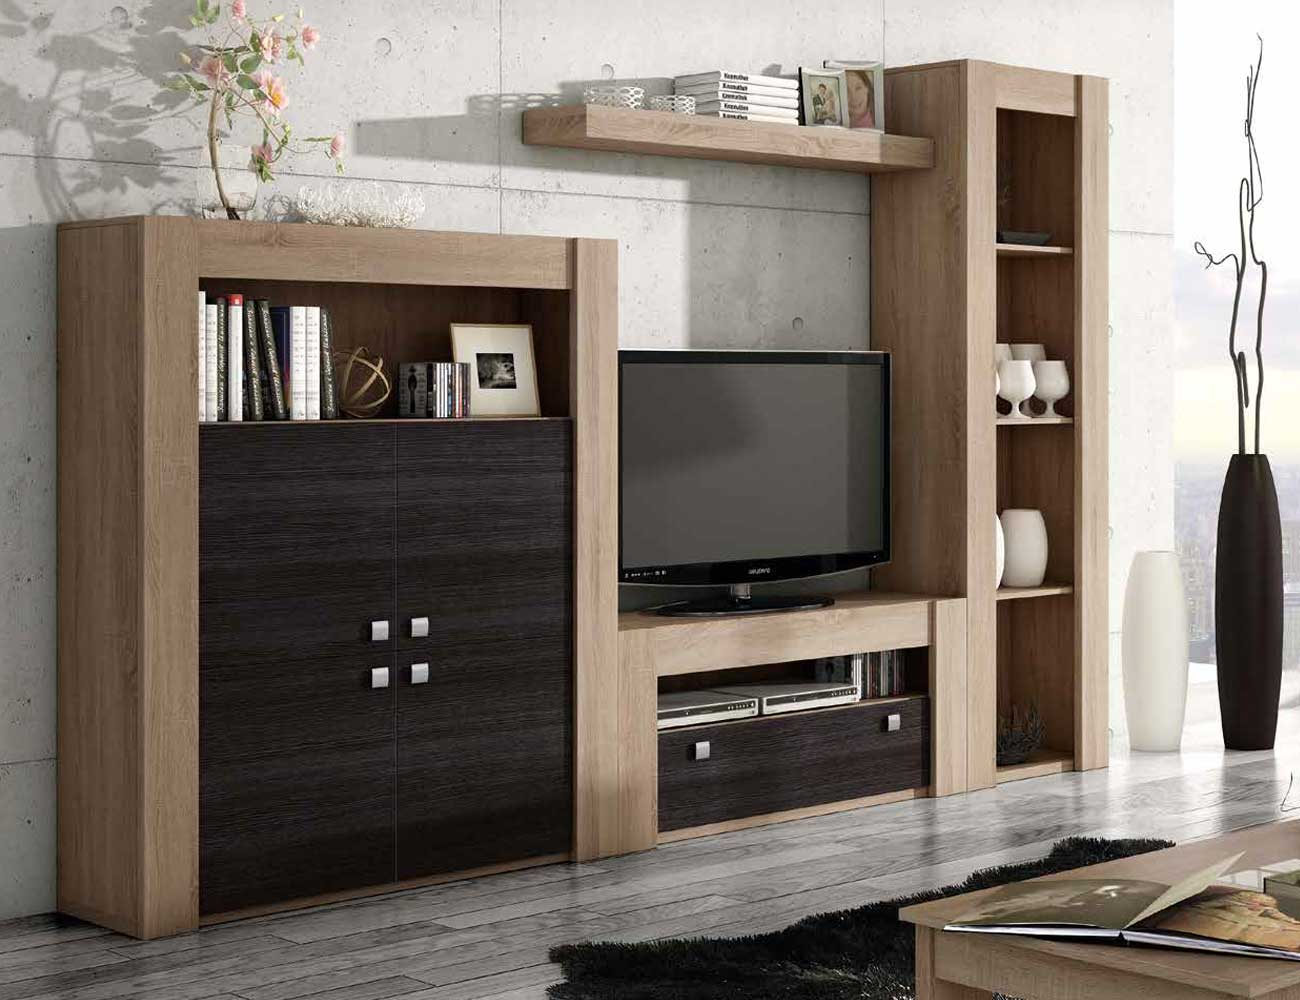 Mueble de sal n modular en cambrian con blanco factory for Mueble modular blanco